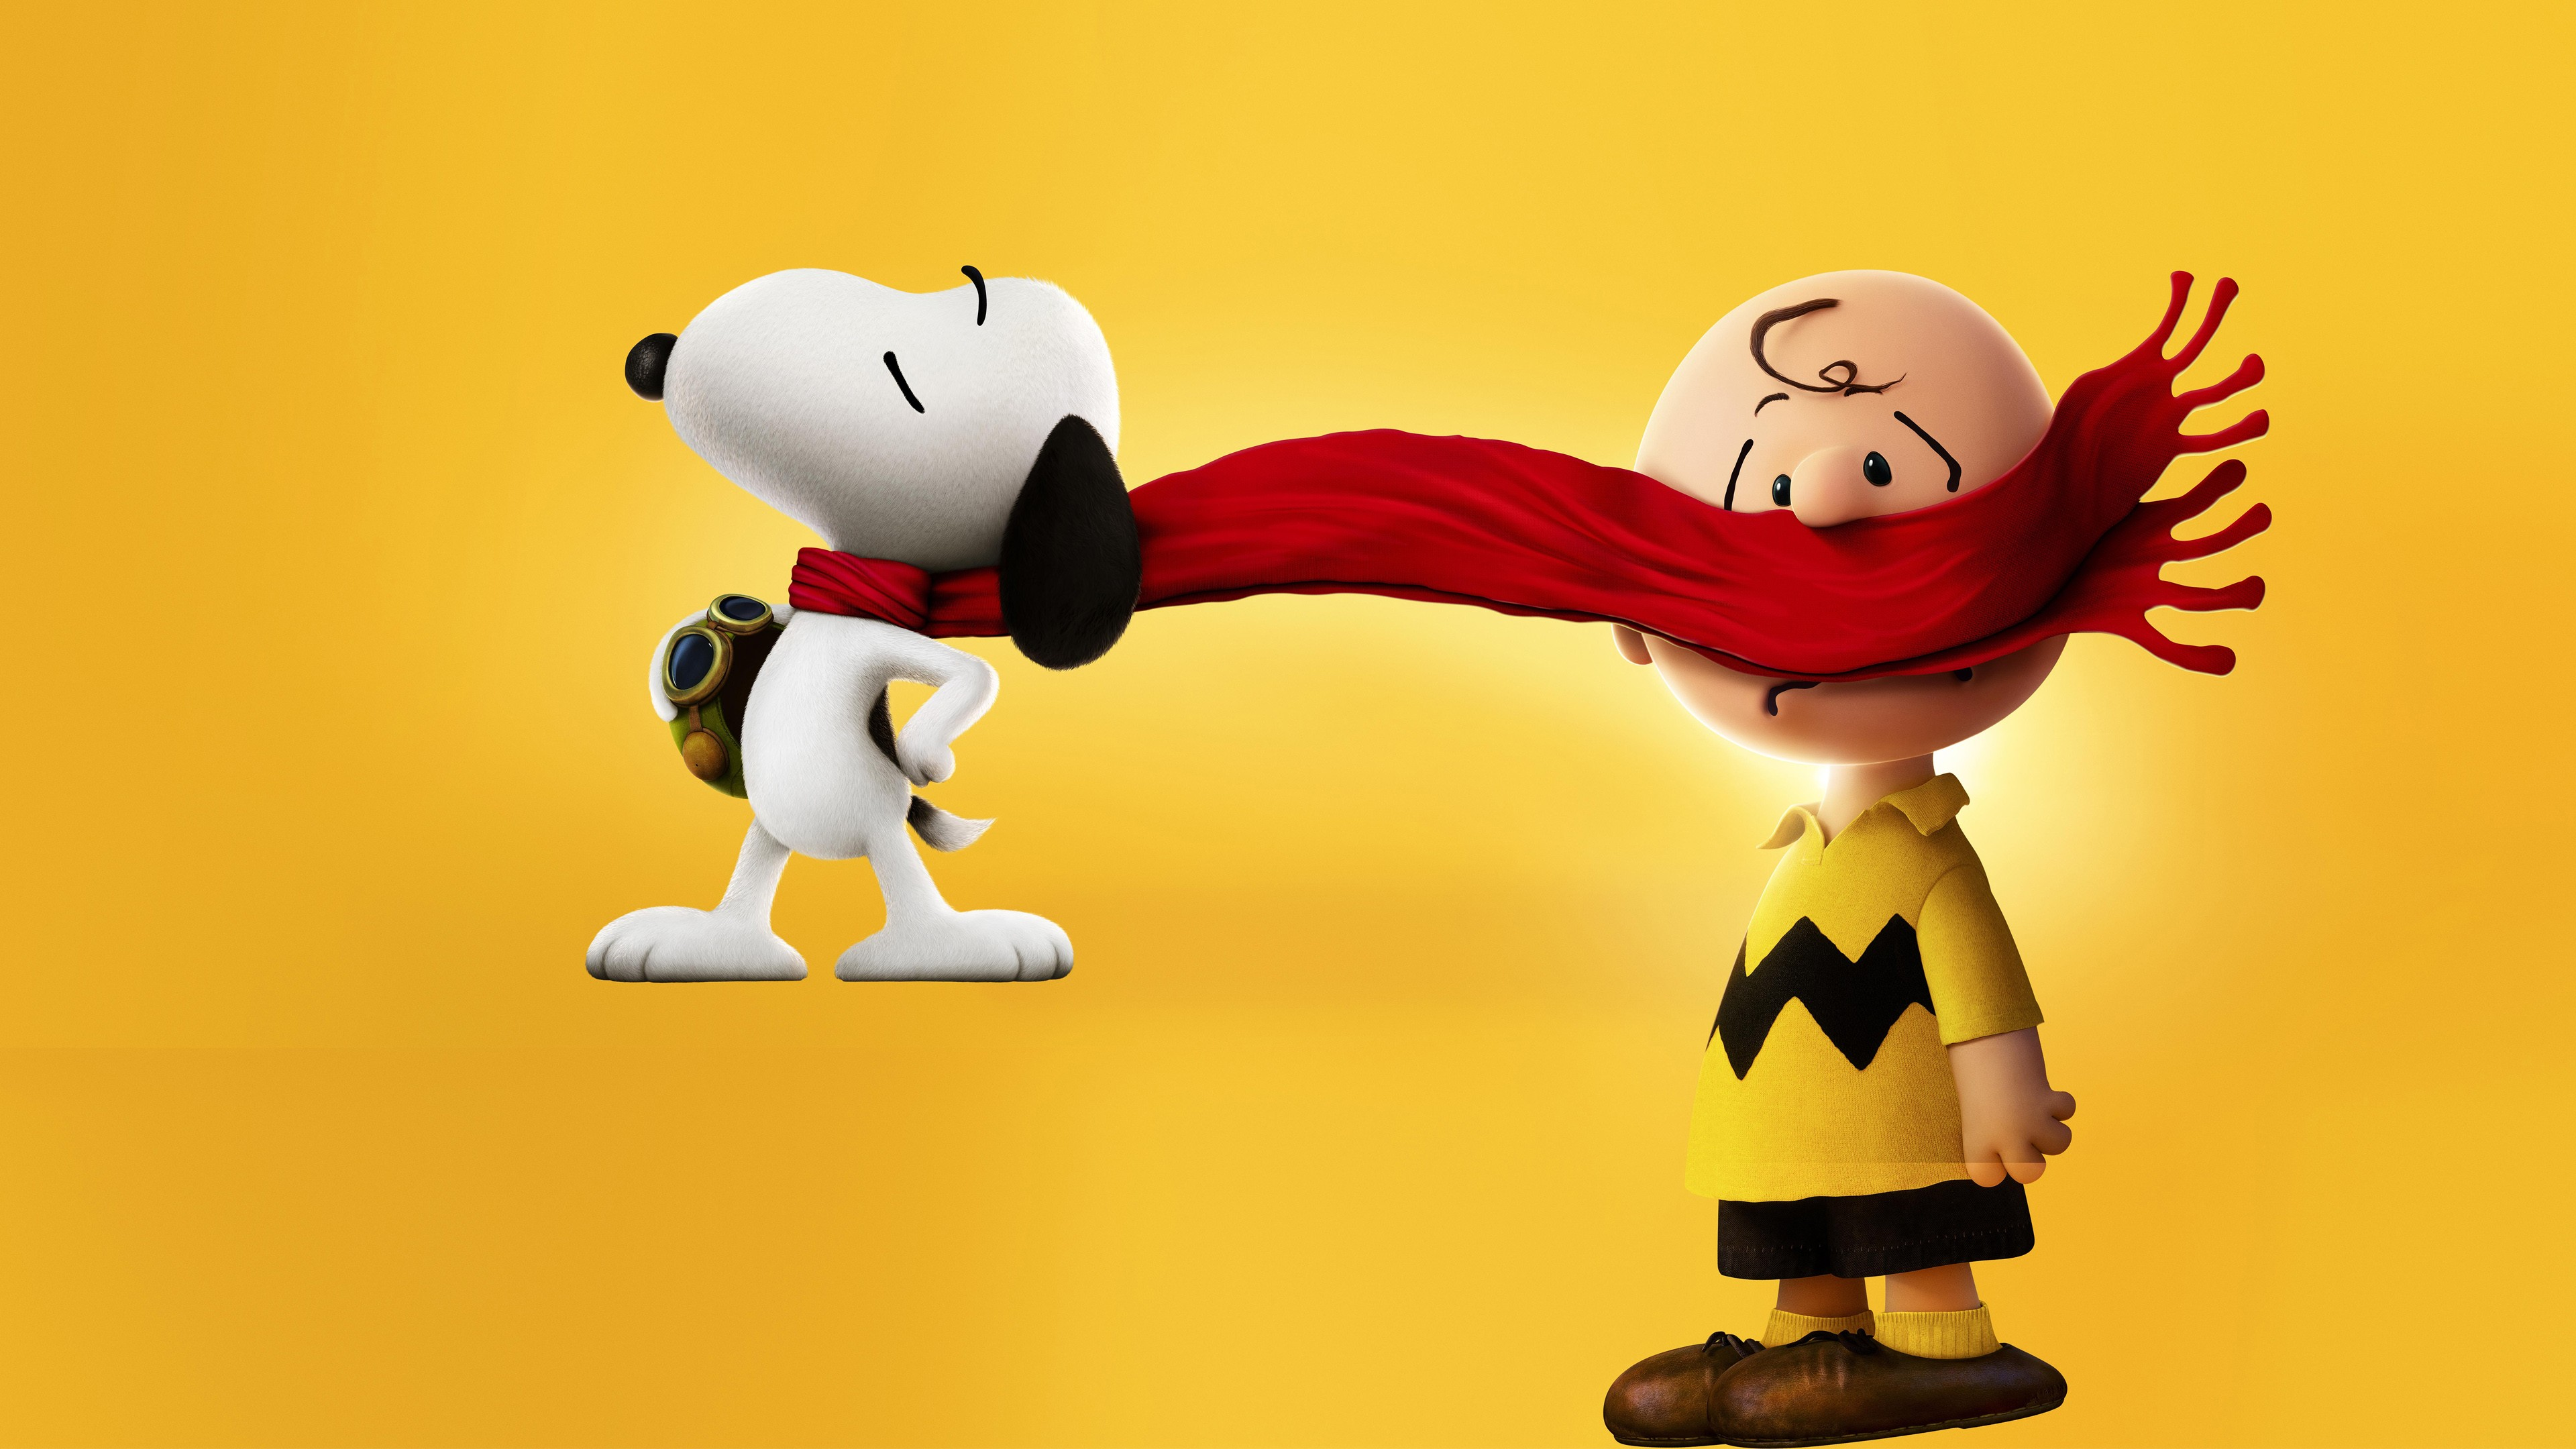 2048x2048 Anthem Ipad Air Hd 4k Wallpapers Images: 2048x2048 The Peanuts Movie Ipad Air HD 4k Wallpapers